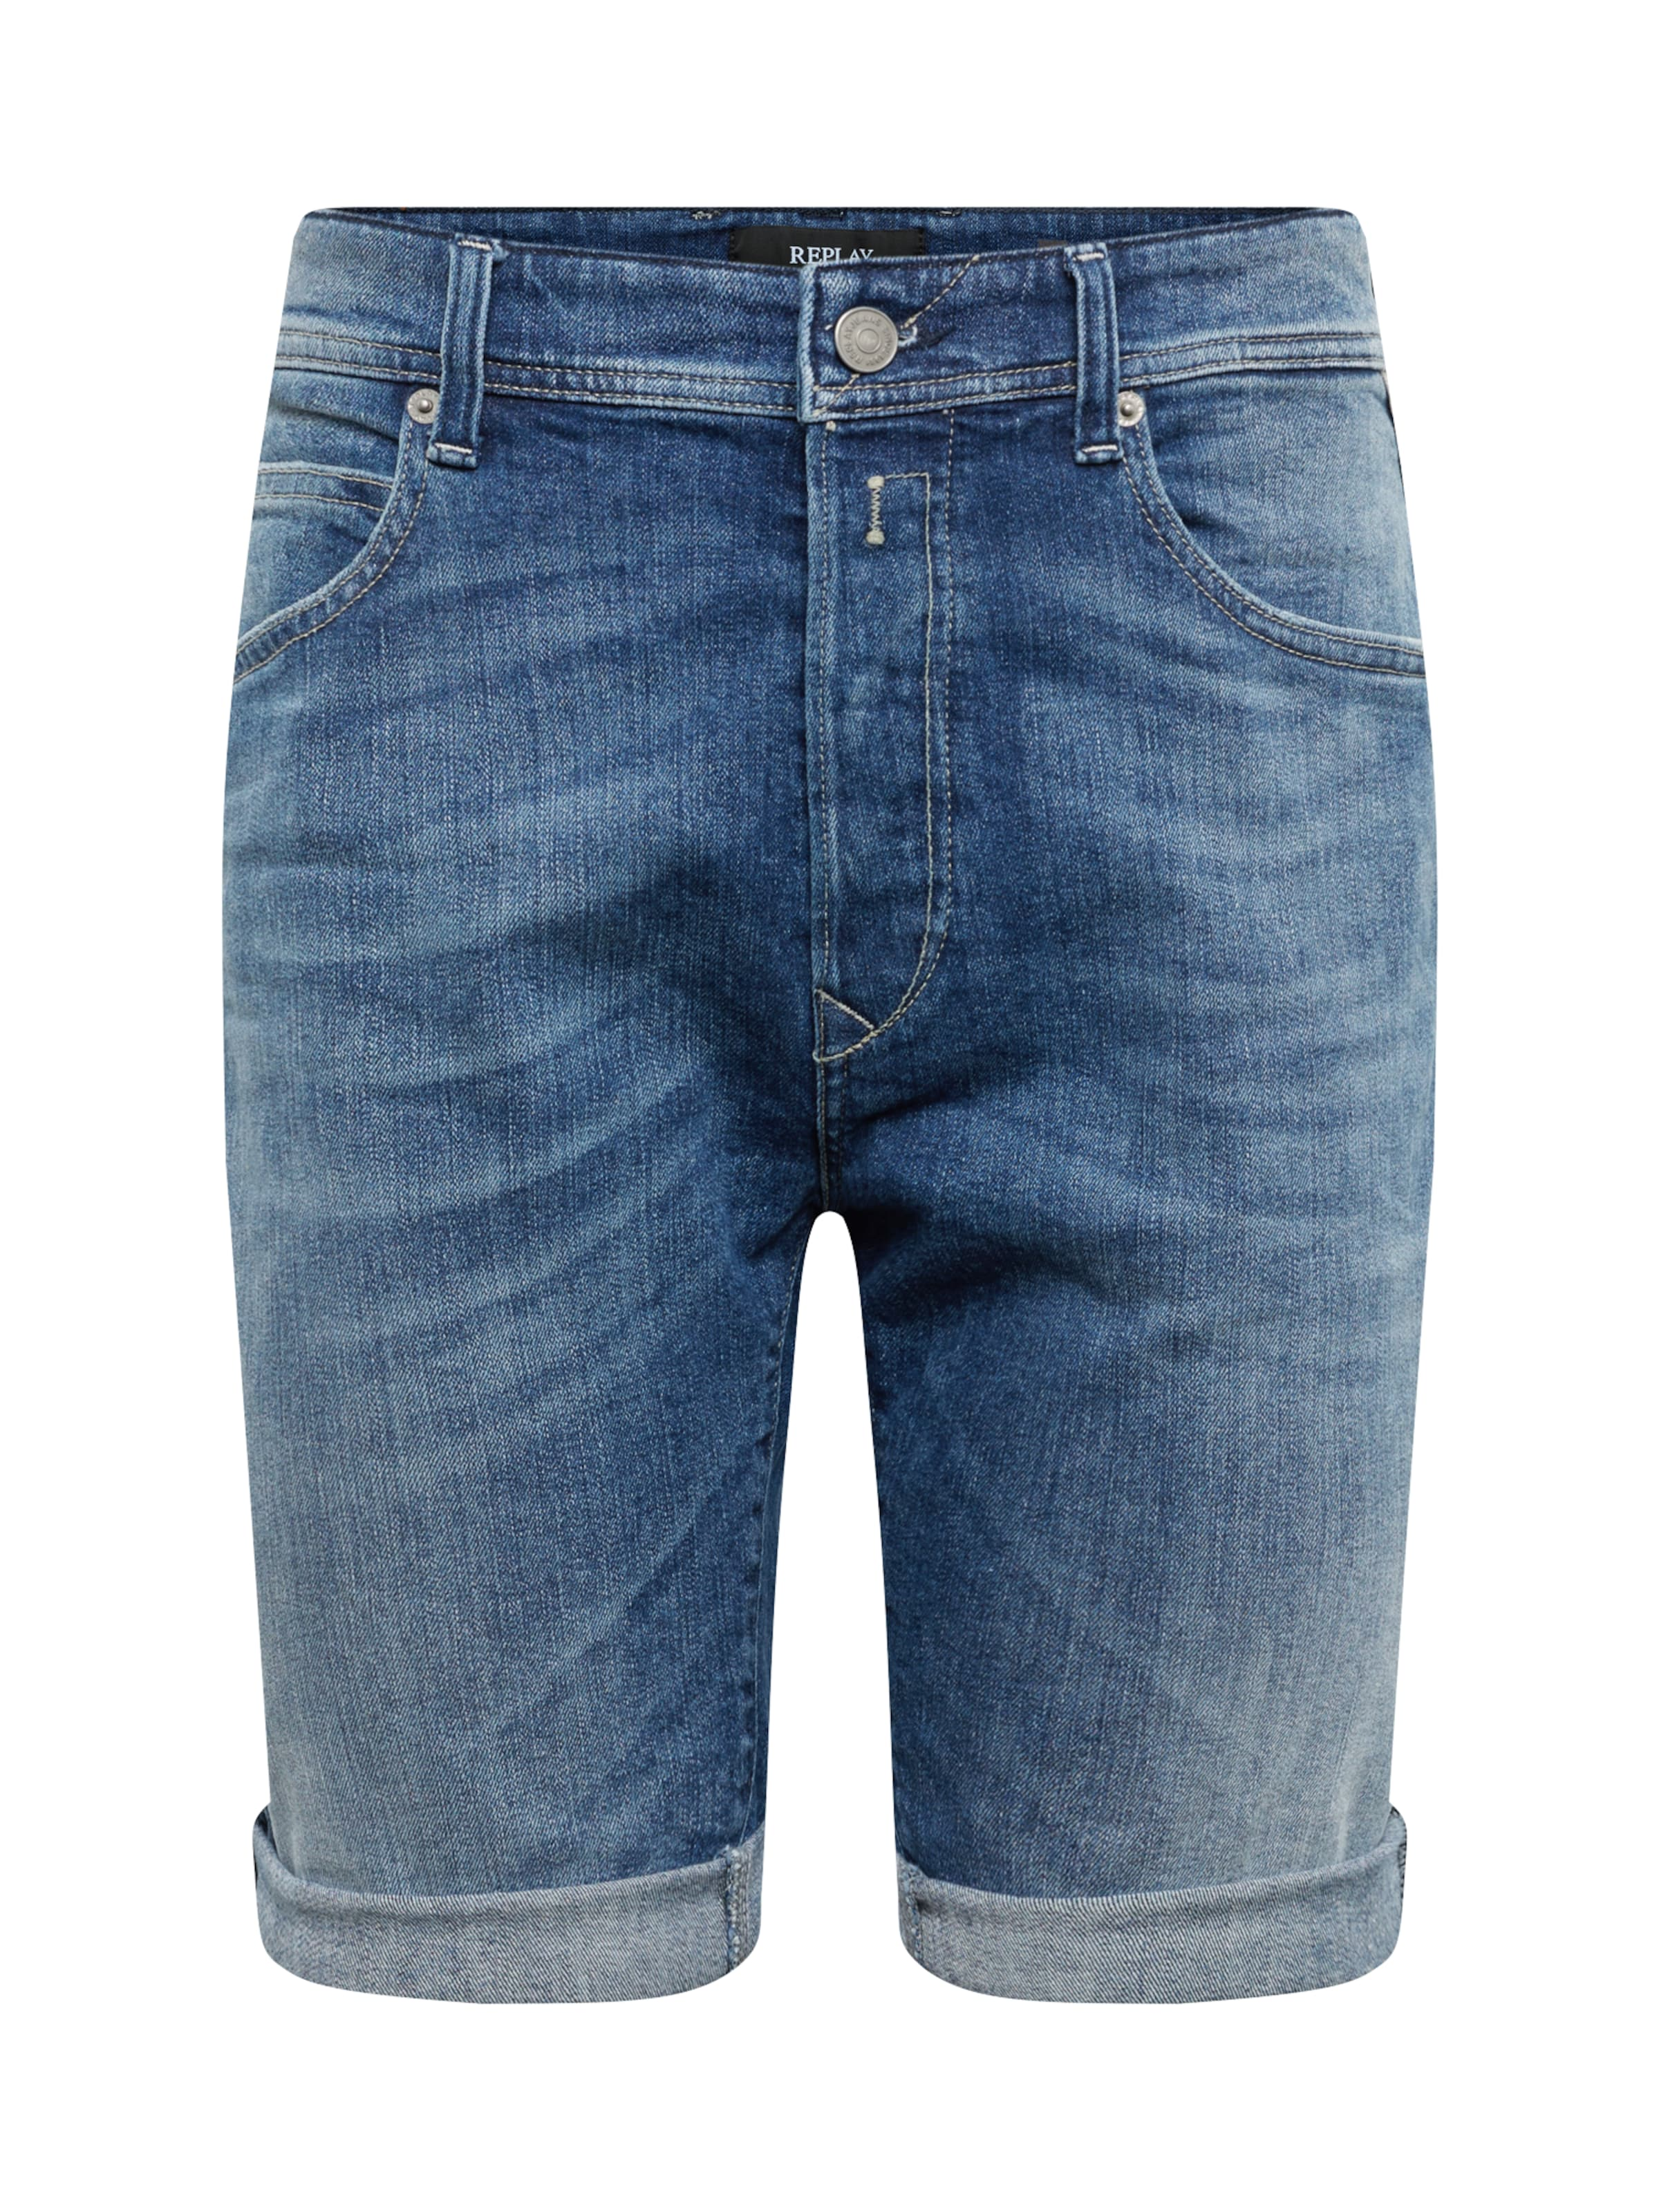 In In Denim Blue Jeansshorts Replay Replay Jeansshorts fY7gmIby6v